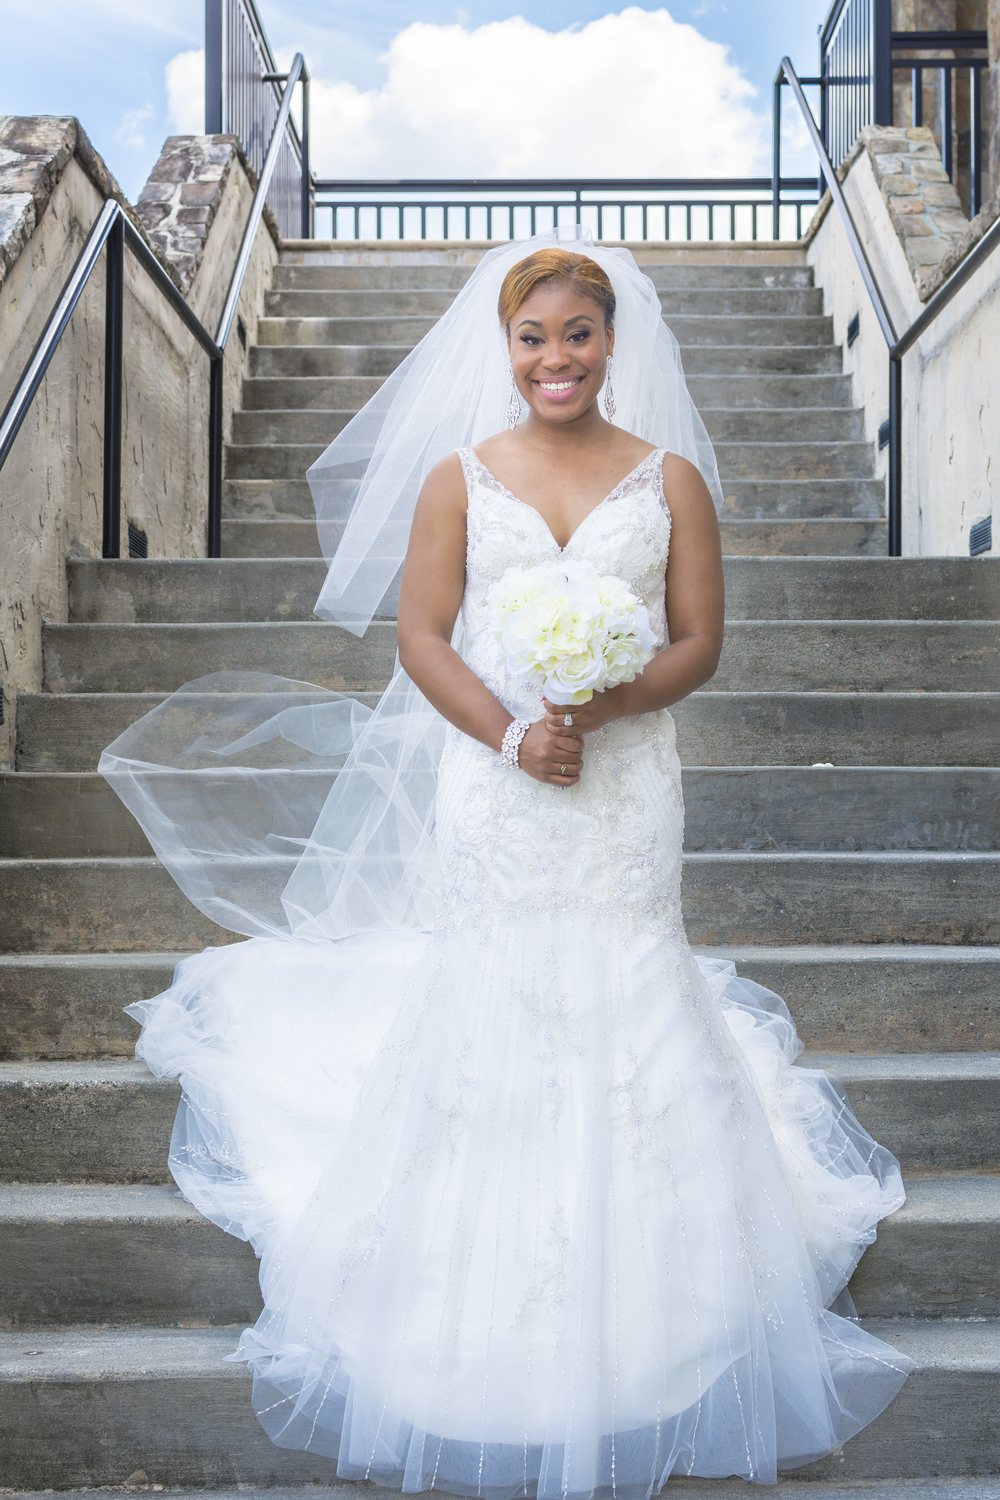 MOORE-BIVENS WEDDING 2015-265-2.jpg